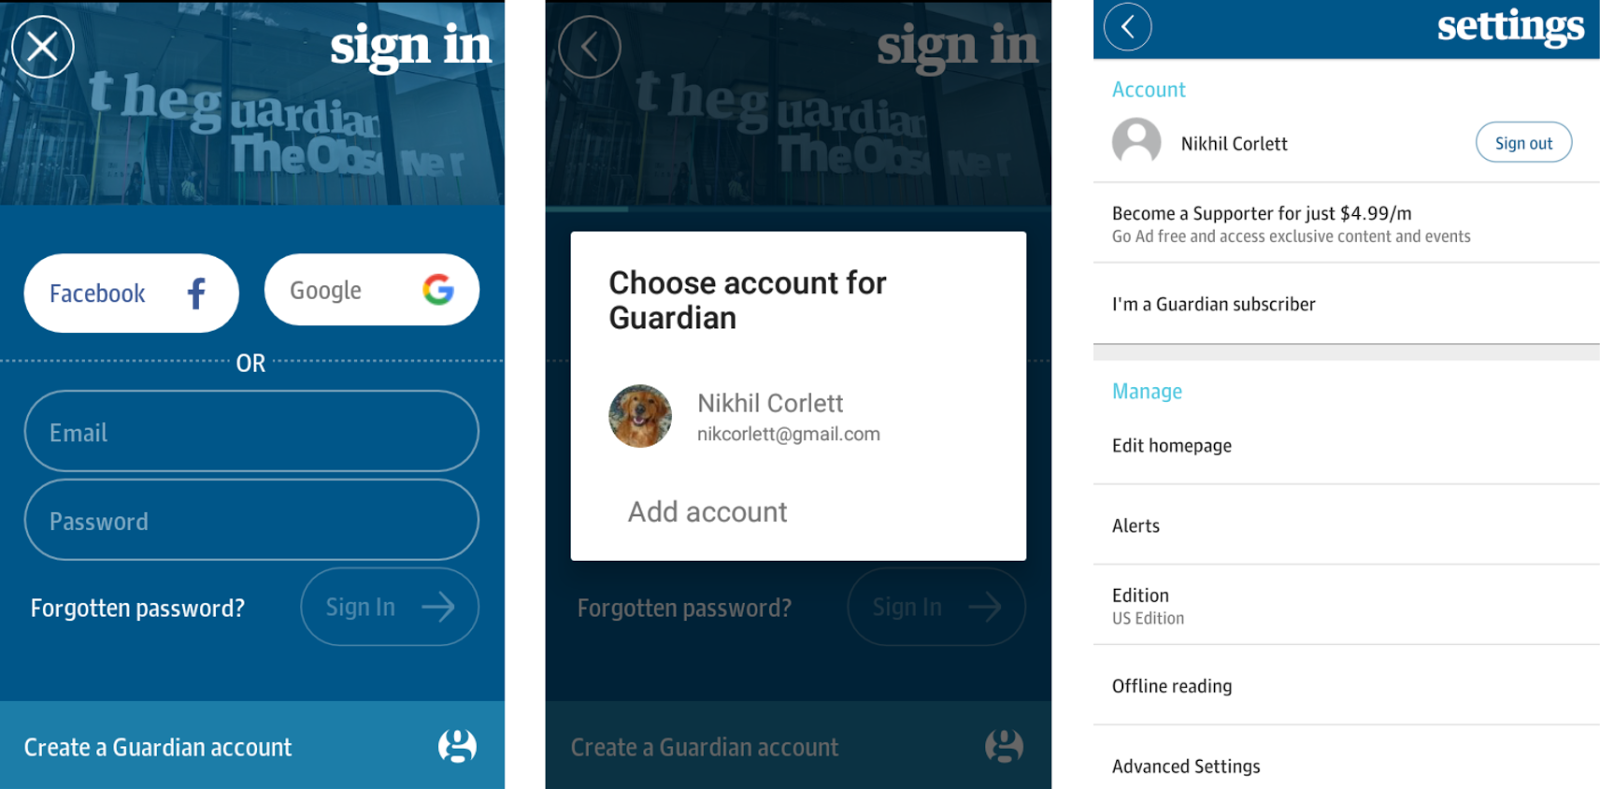 moving to google sign-in for a better user experience and higher